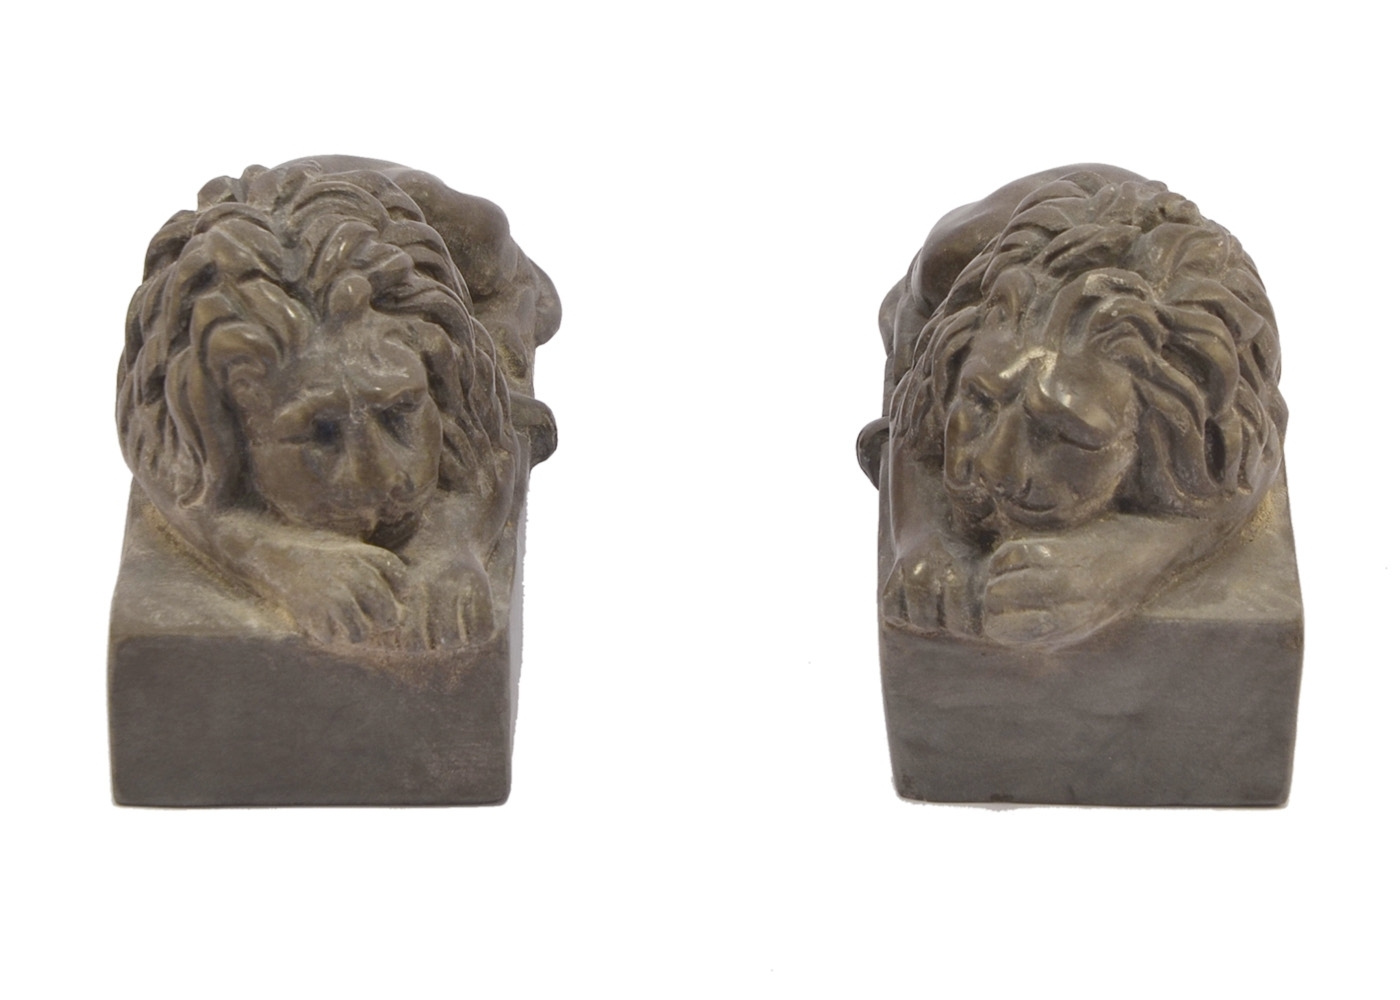 Buy Marble Couple Lions Carved Italian 17457758 | Italy2Us.com